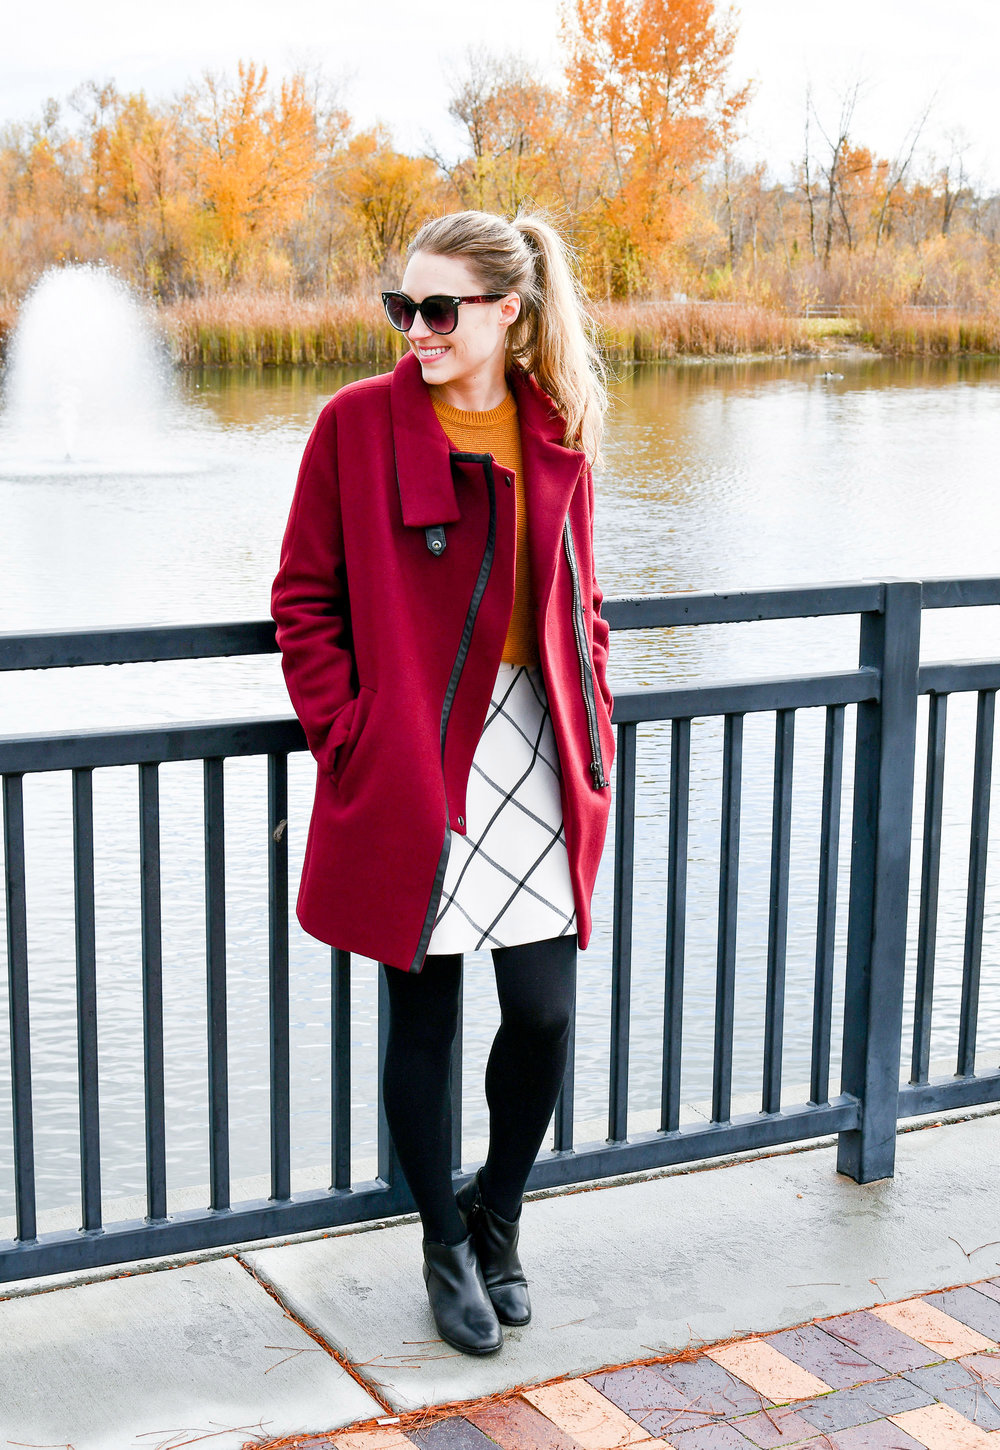 Madewell City Grid coat outfit with windowpane skirt — Cotton Cashmere Cat Hair